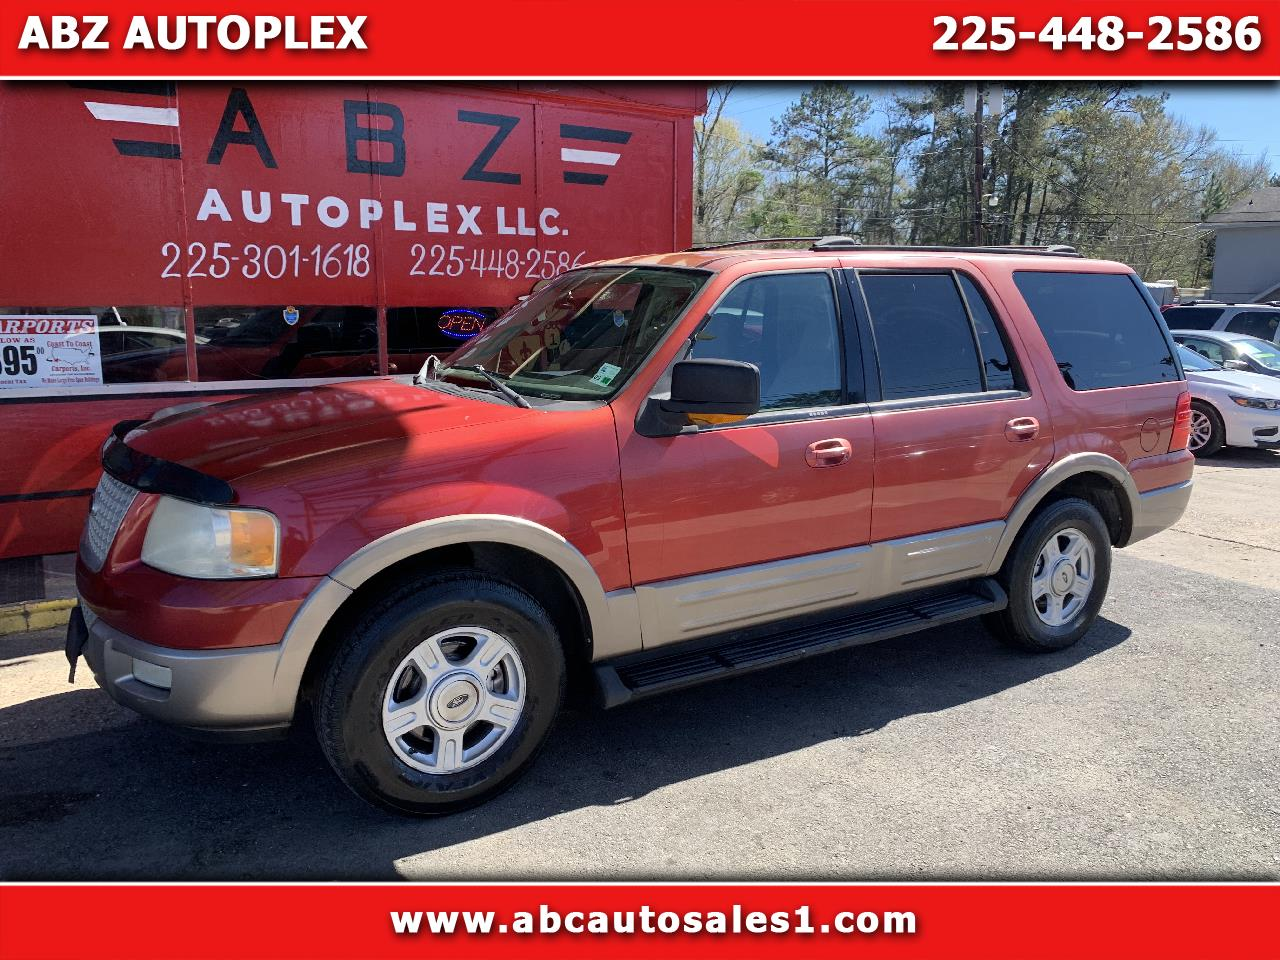 Ford Expedition 5.4L Eddie Bauer 2003